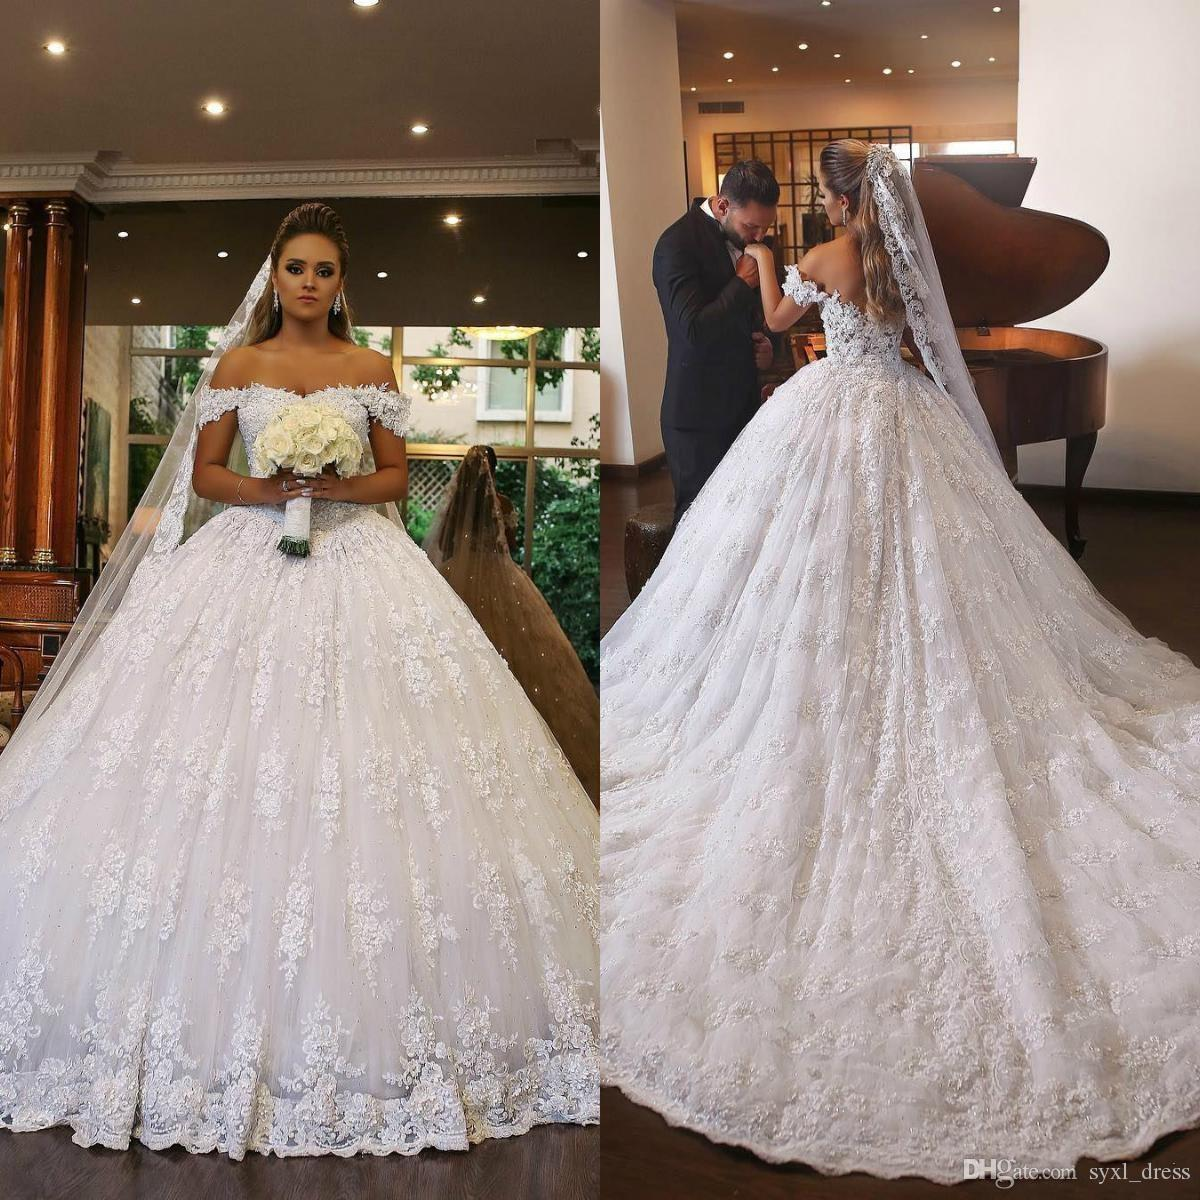 Princess Ball Gowns For Wedding: Plus Size White Princess Lace Ball Gown Wedding Dresses